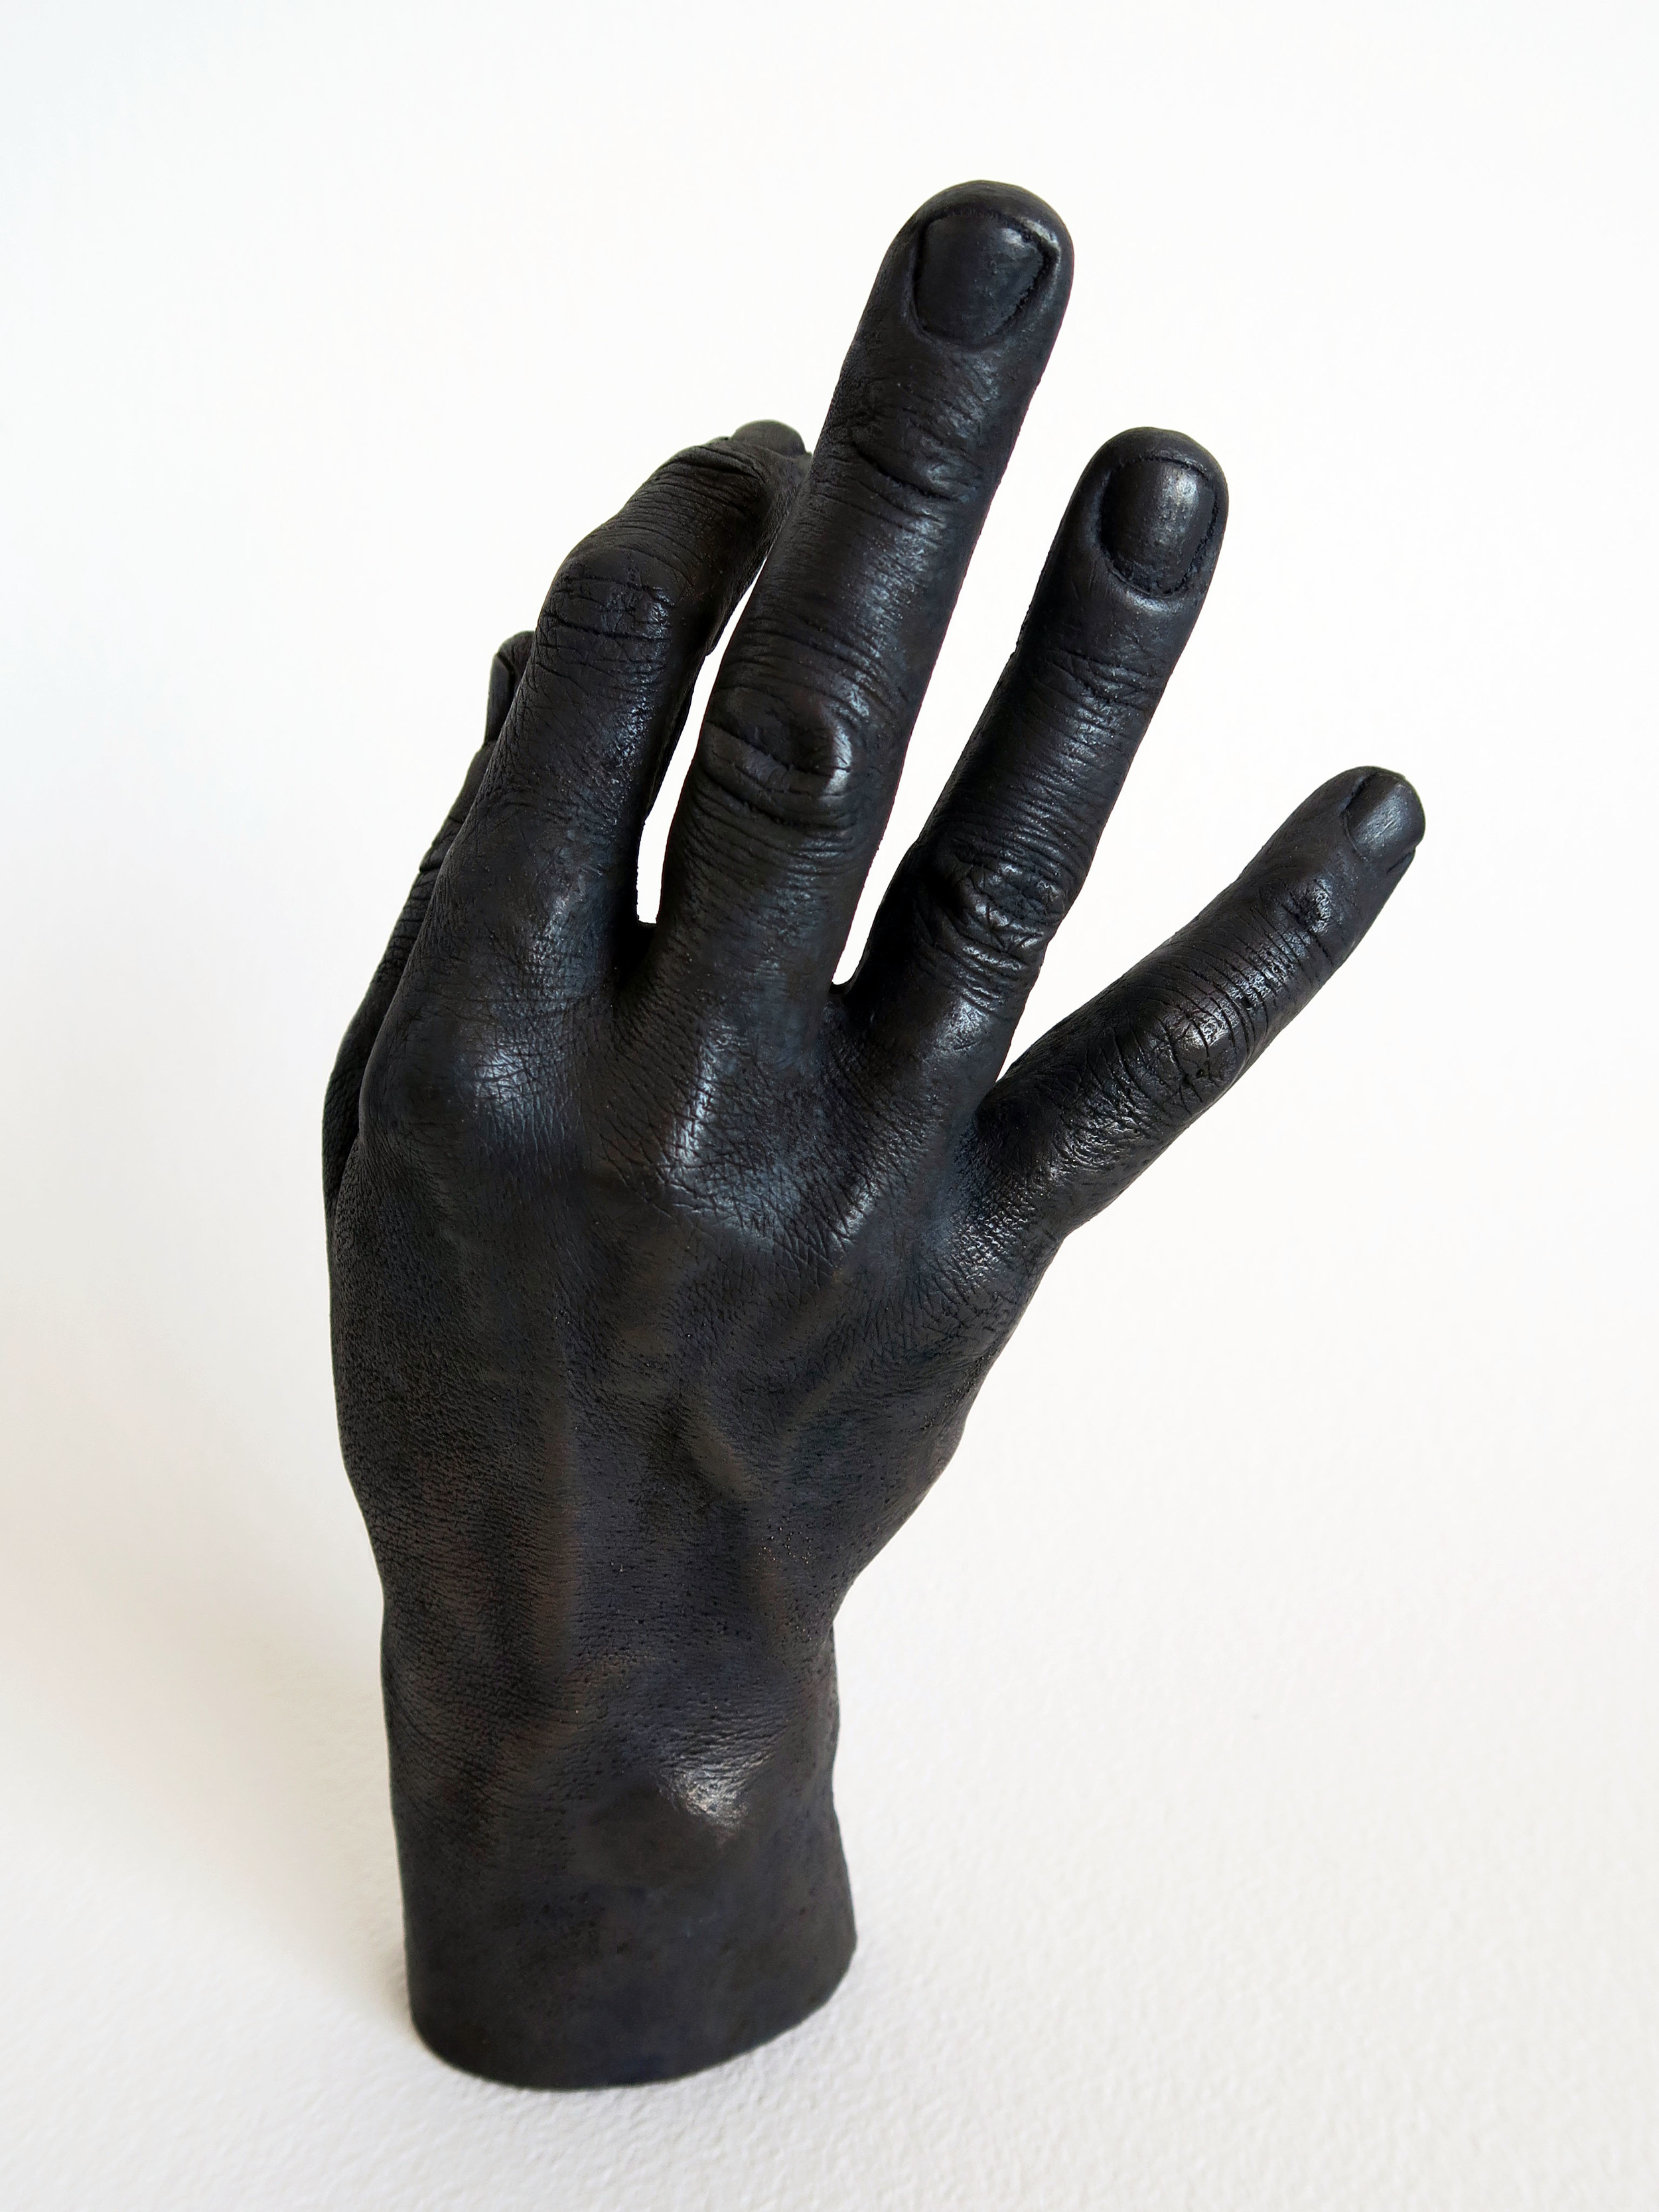 [IMAGE - Hand cast in bronze.Anna Mayer, We Are Not Only Anything ]